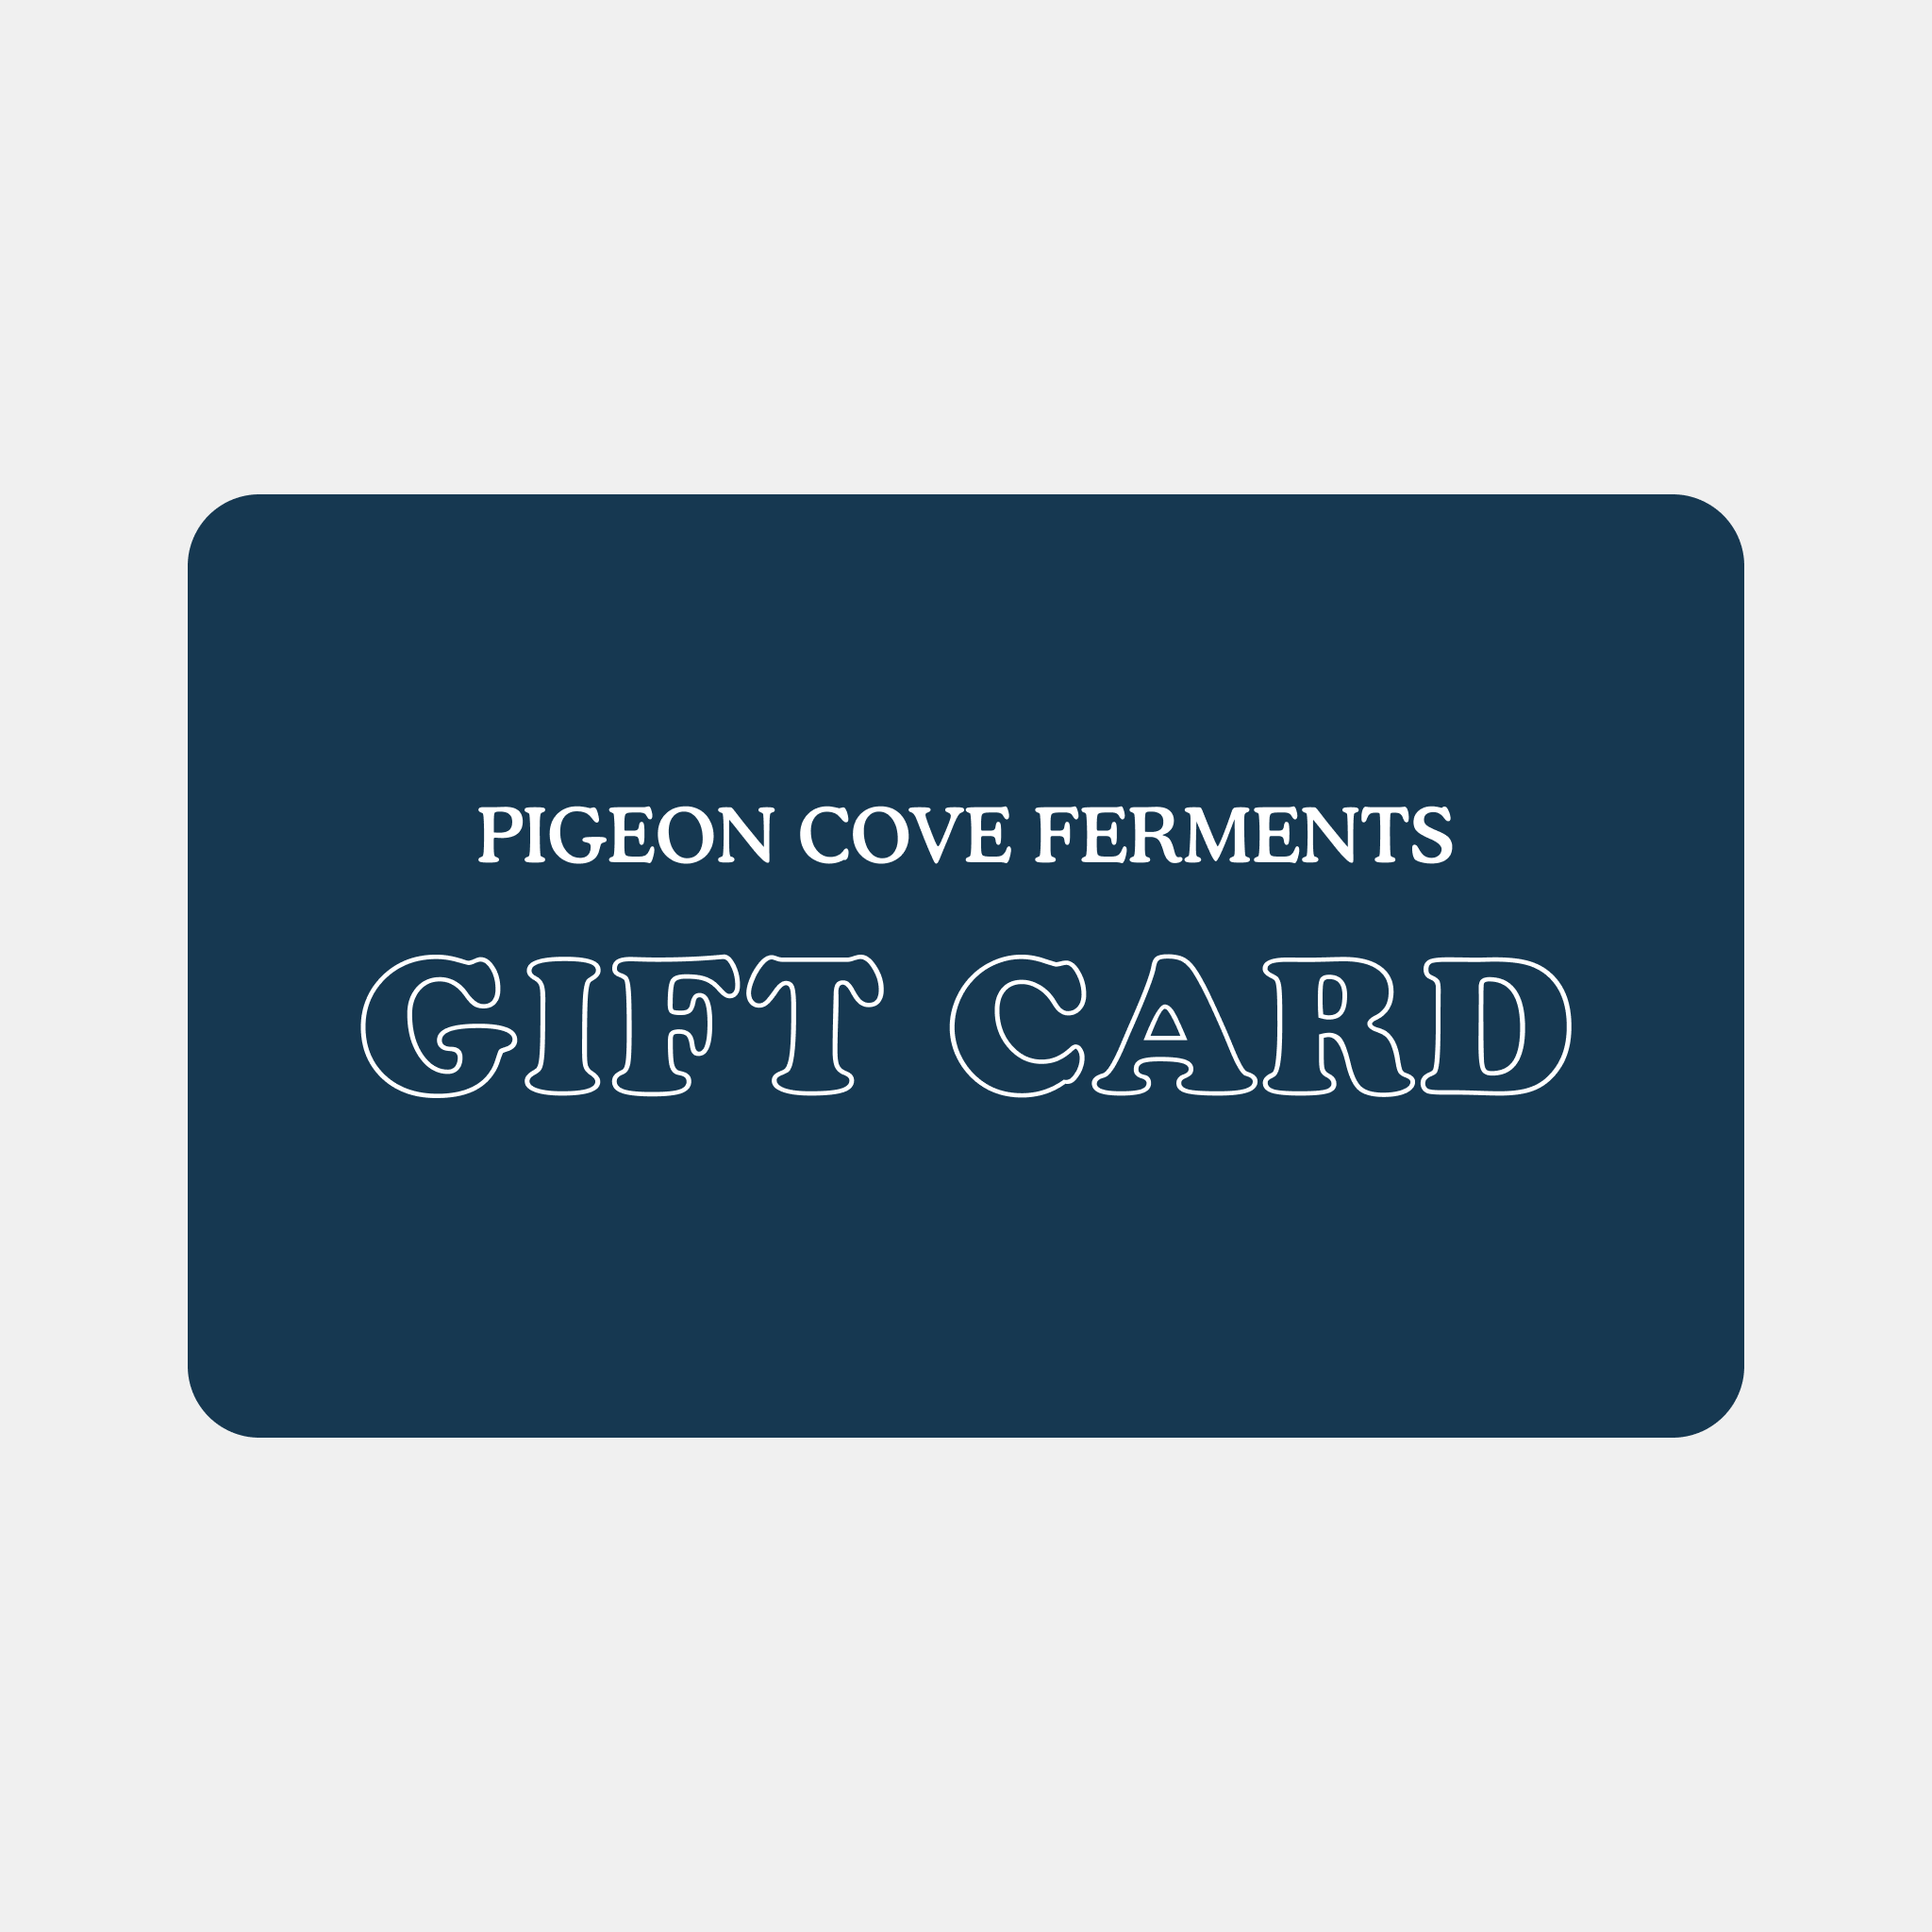 Pigeon Cove Ferments Gift Card